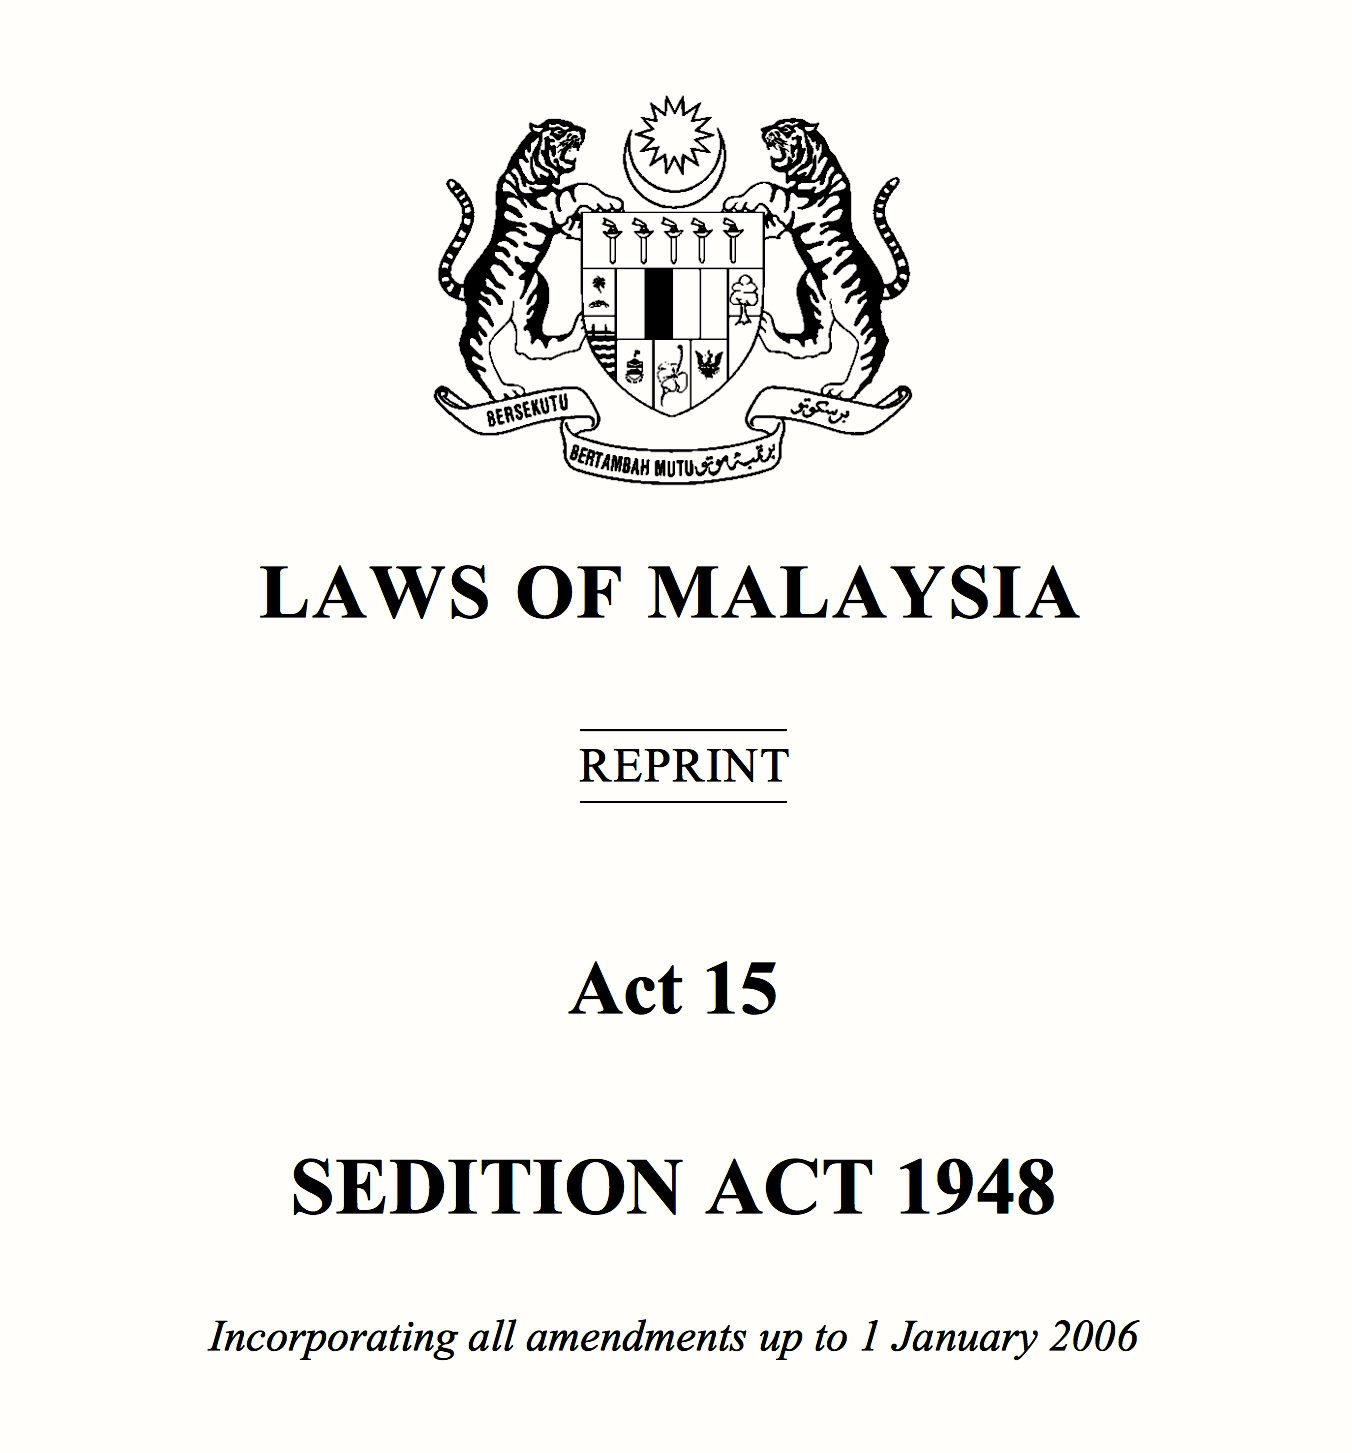 the sedition act in malaysia essay The federal constitution of malaysia is considered as the supreme law in  malaysia  we will discuss about this issue thoroughly in this essay  the  sanction was given under section 5(1) of the sedition act the court's  consideration was.